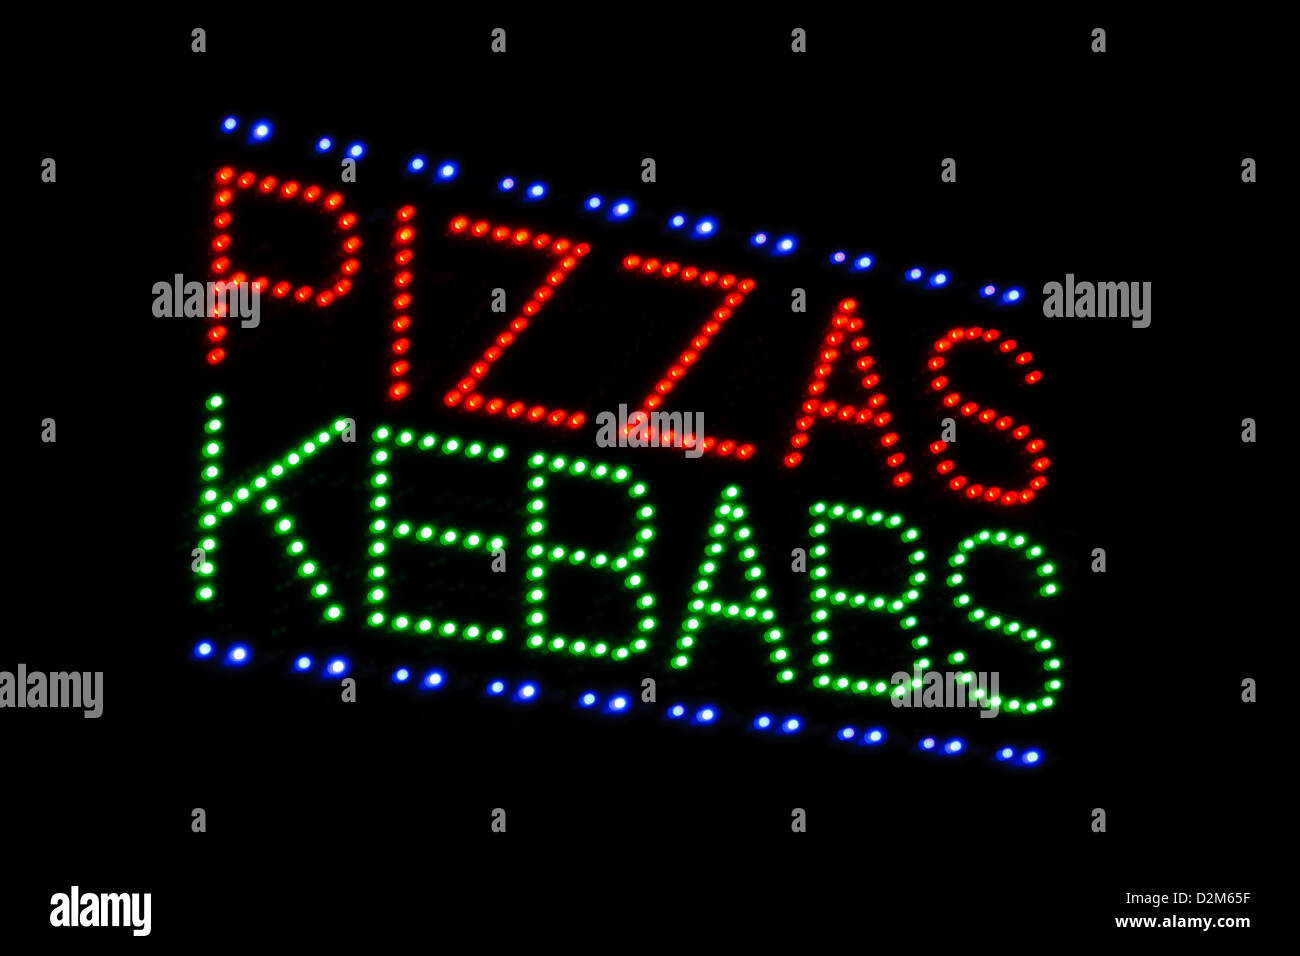 illuminated led sign advertising pizza and kebabs at take away or carry out - Stock Image